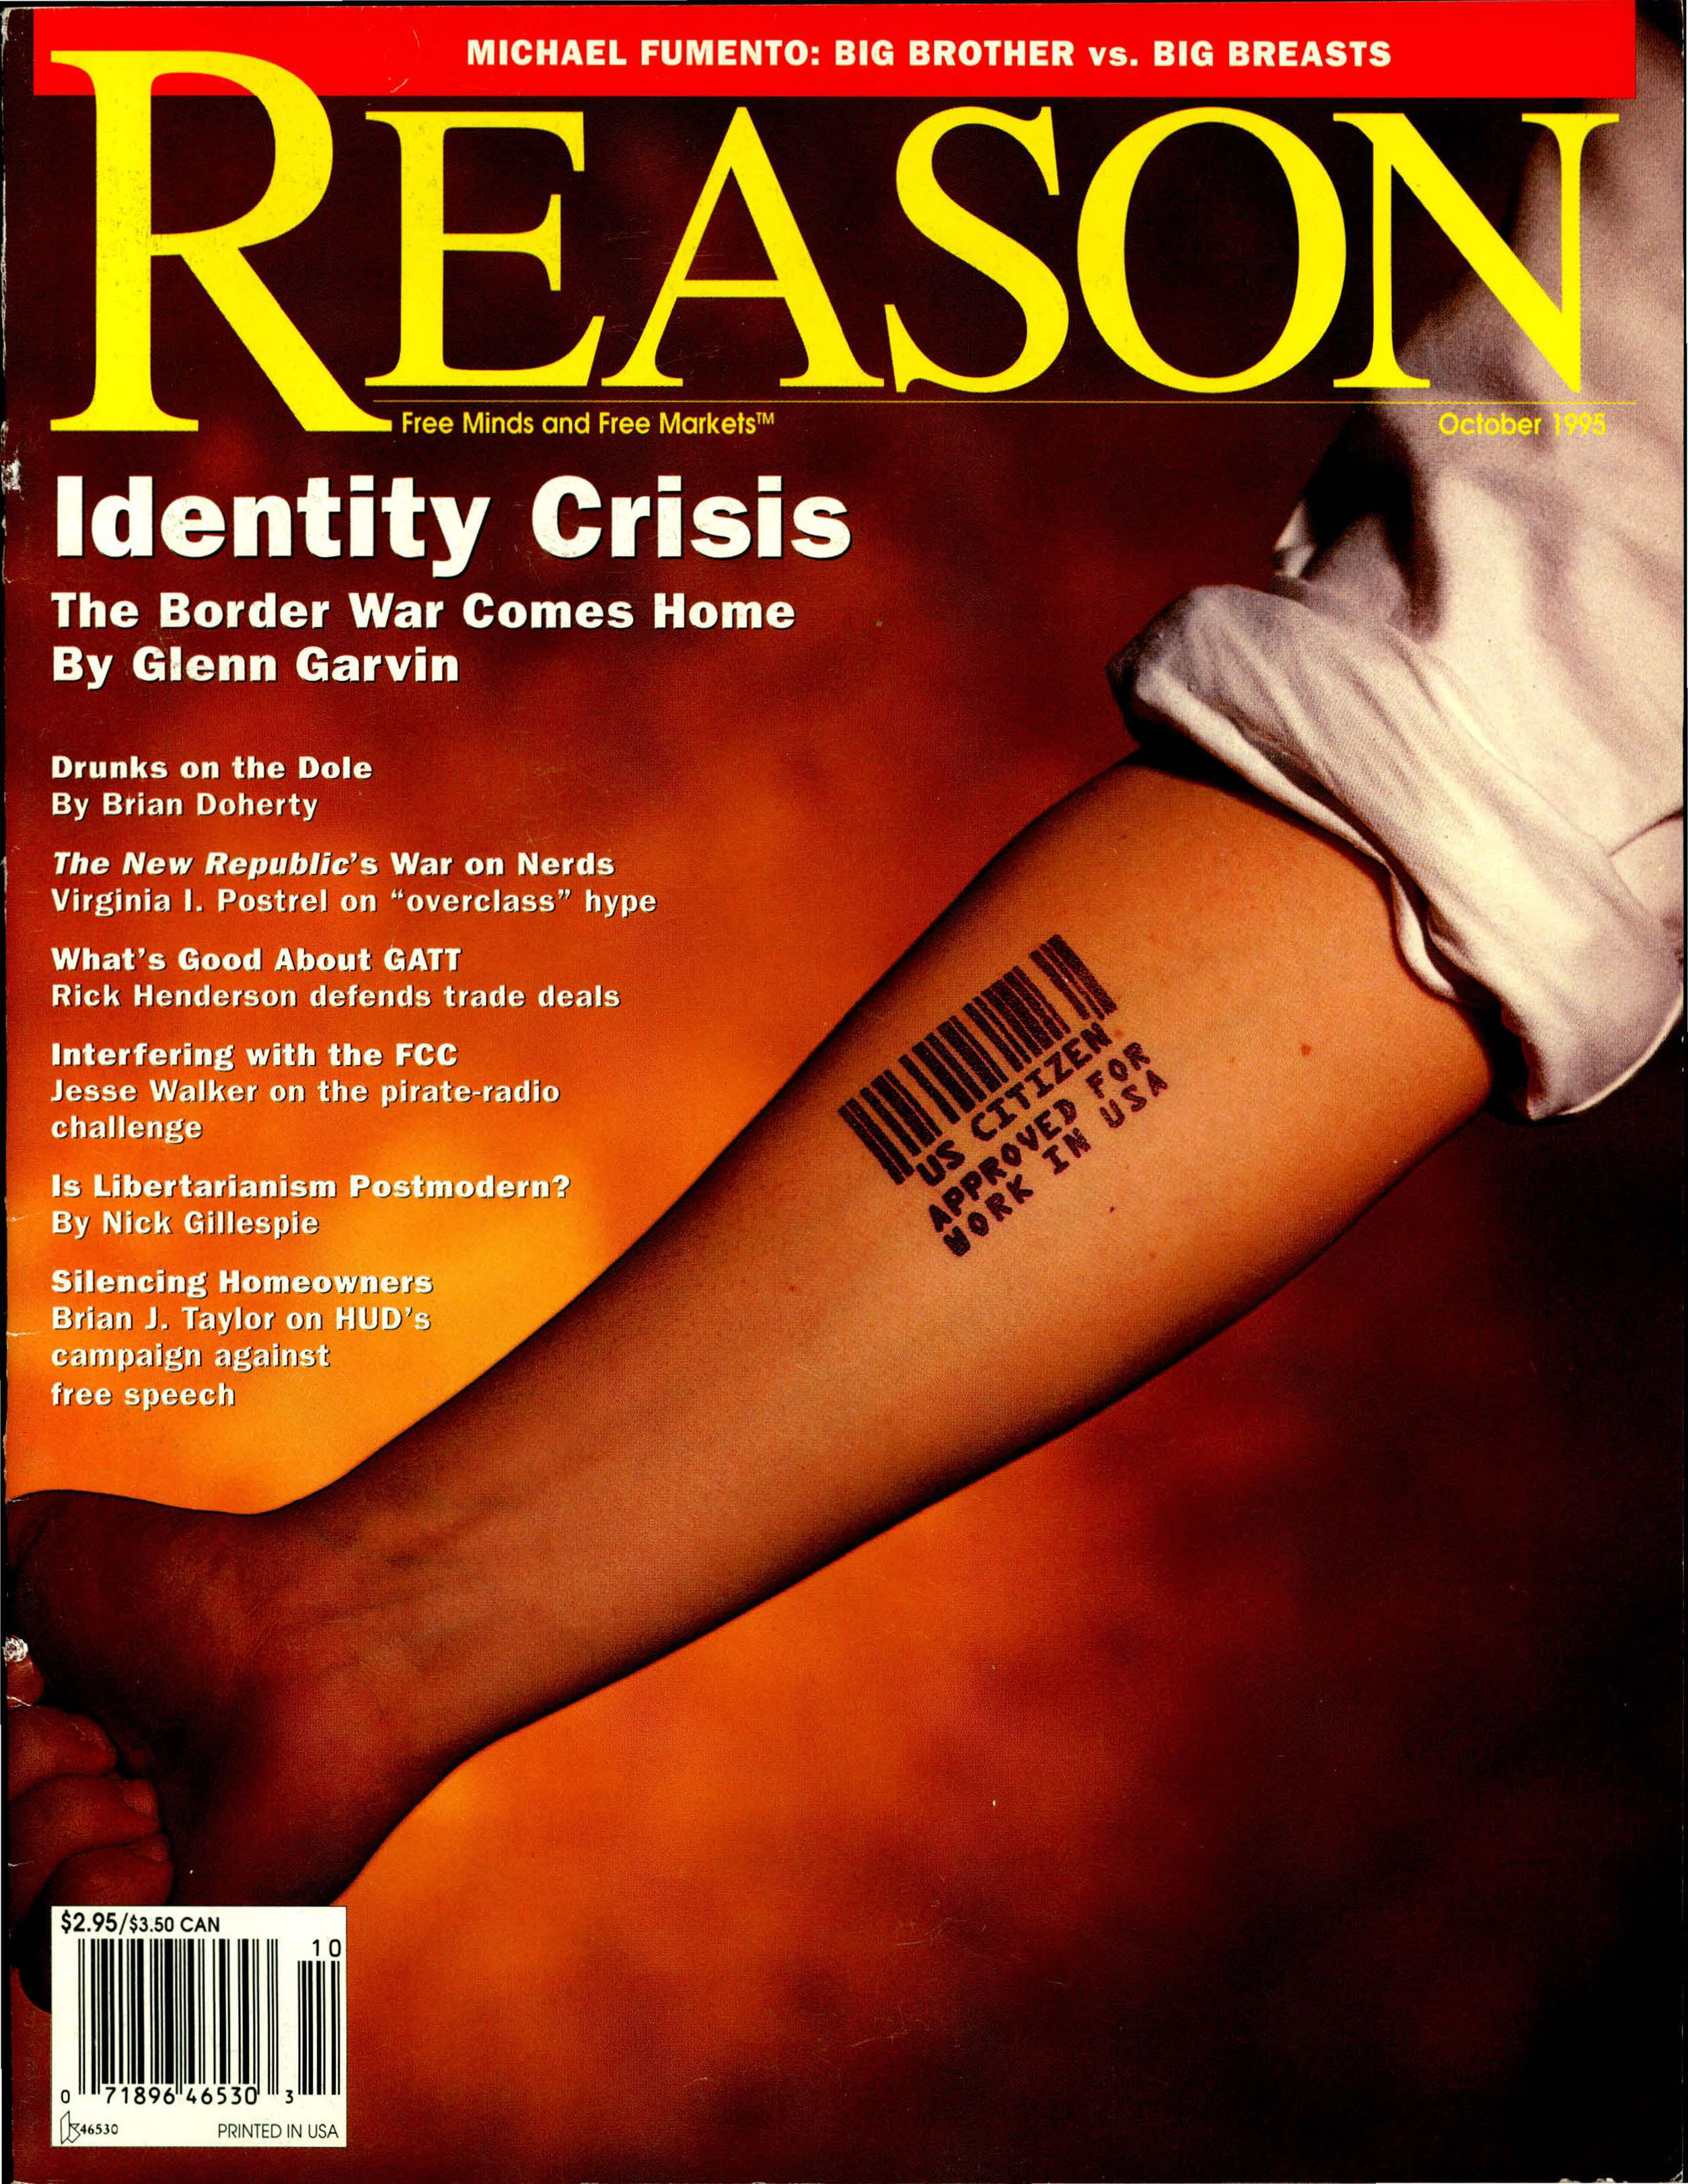 Reason Magazine, October 1995 cover image